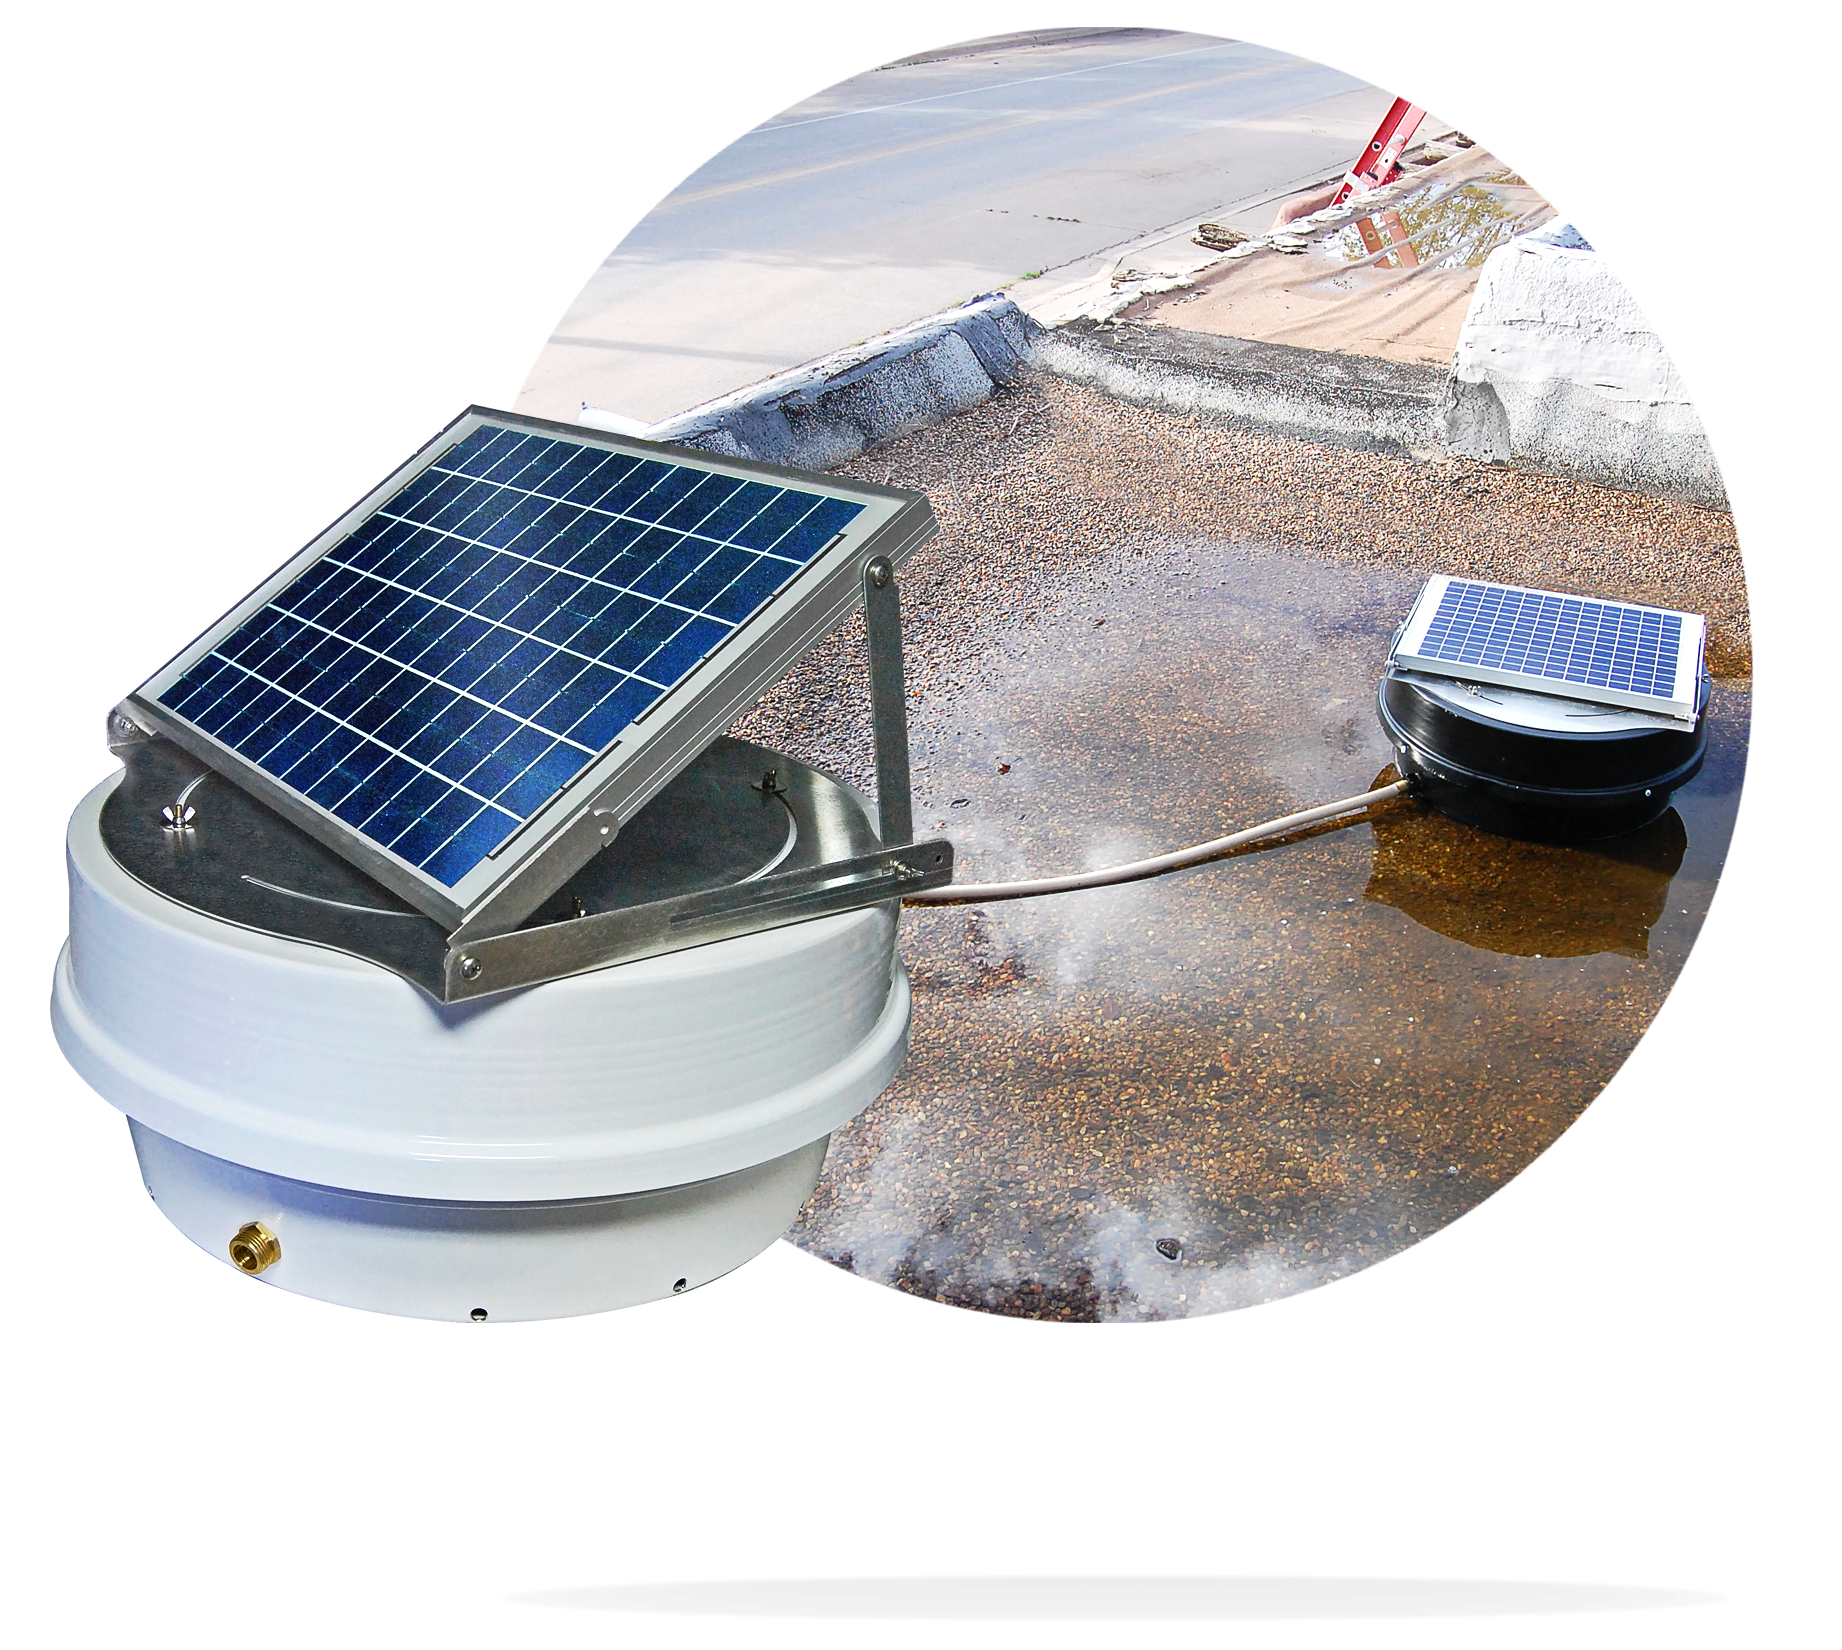 The Roof Bilge Pump will allow you to quickly and efficiently remove large puddles of water from on top of your flat roof!